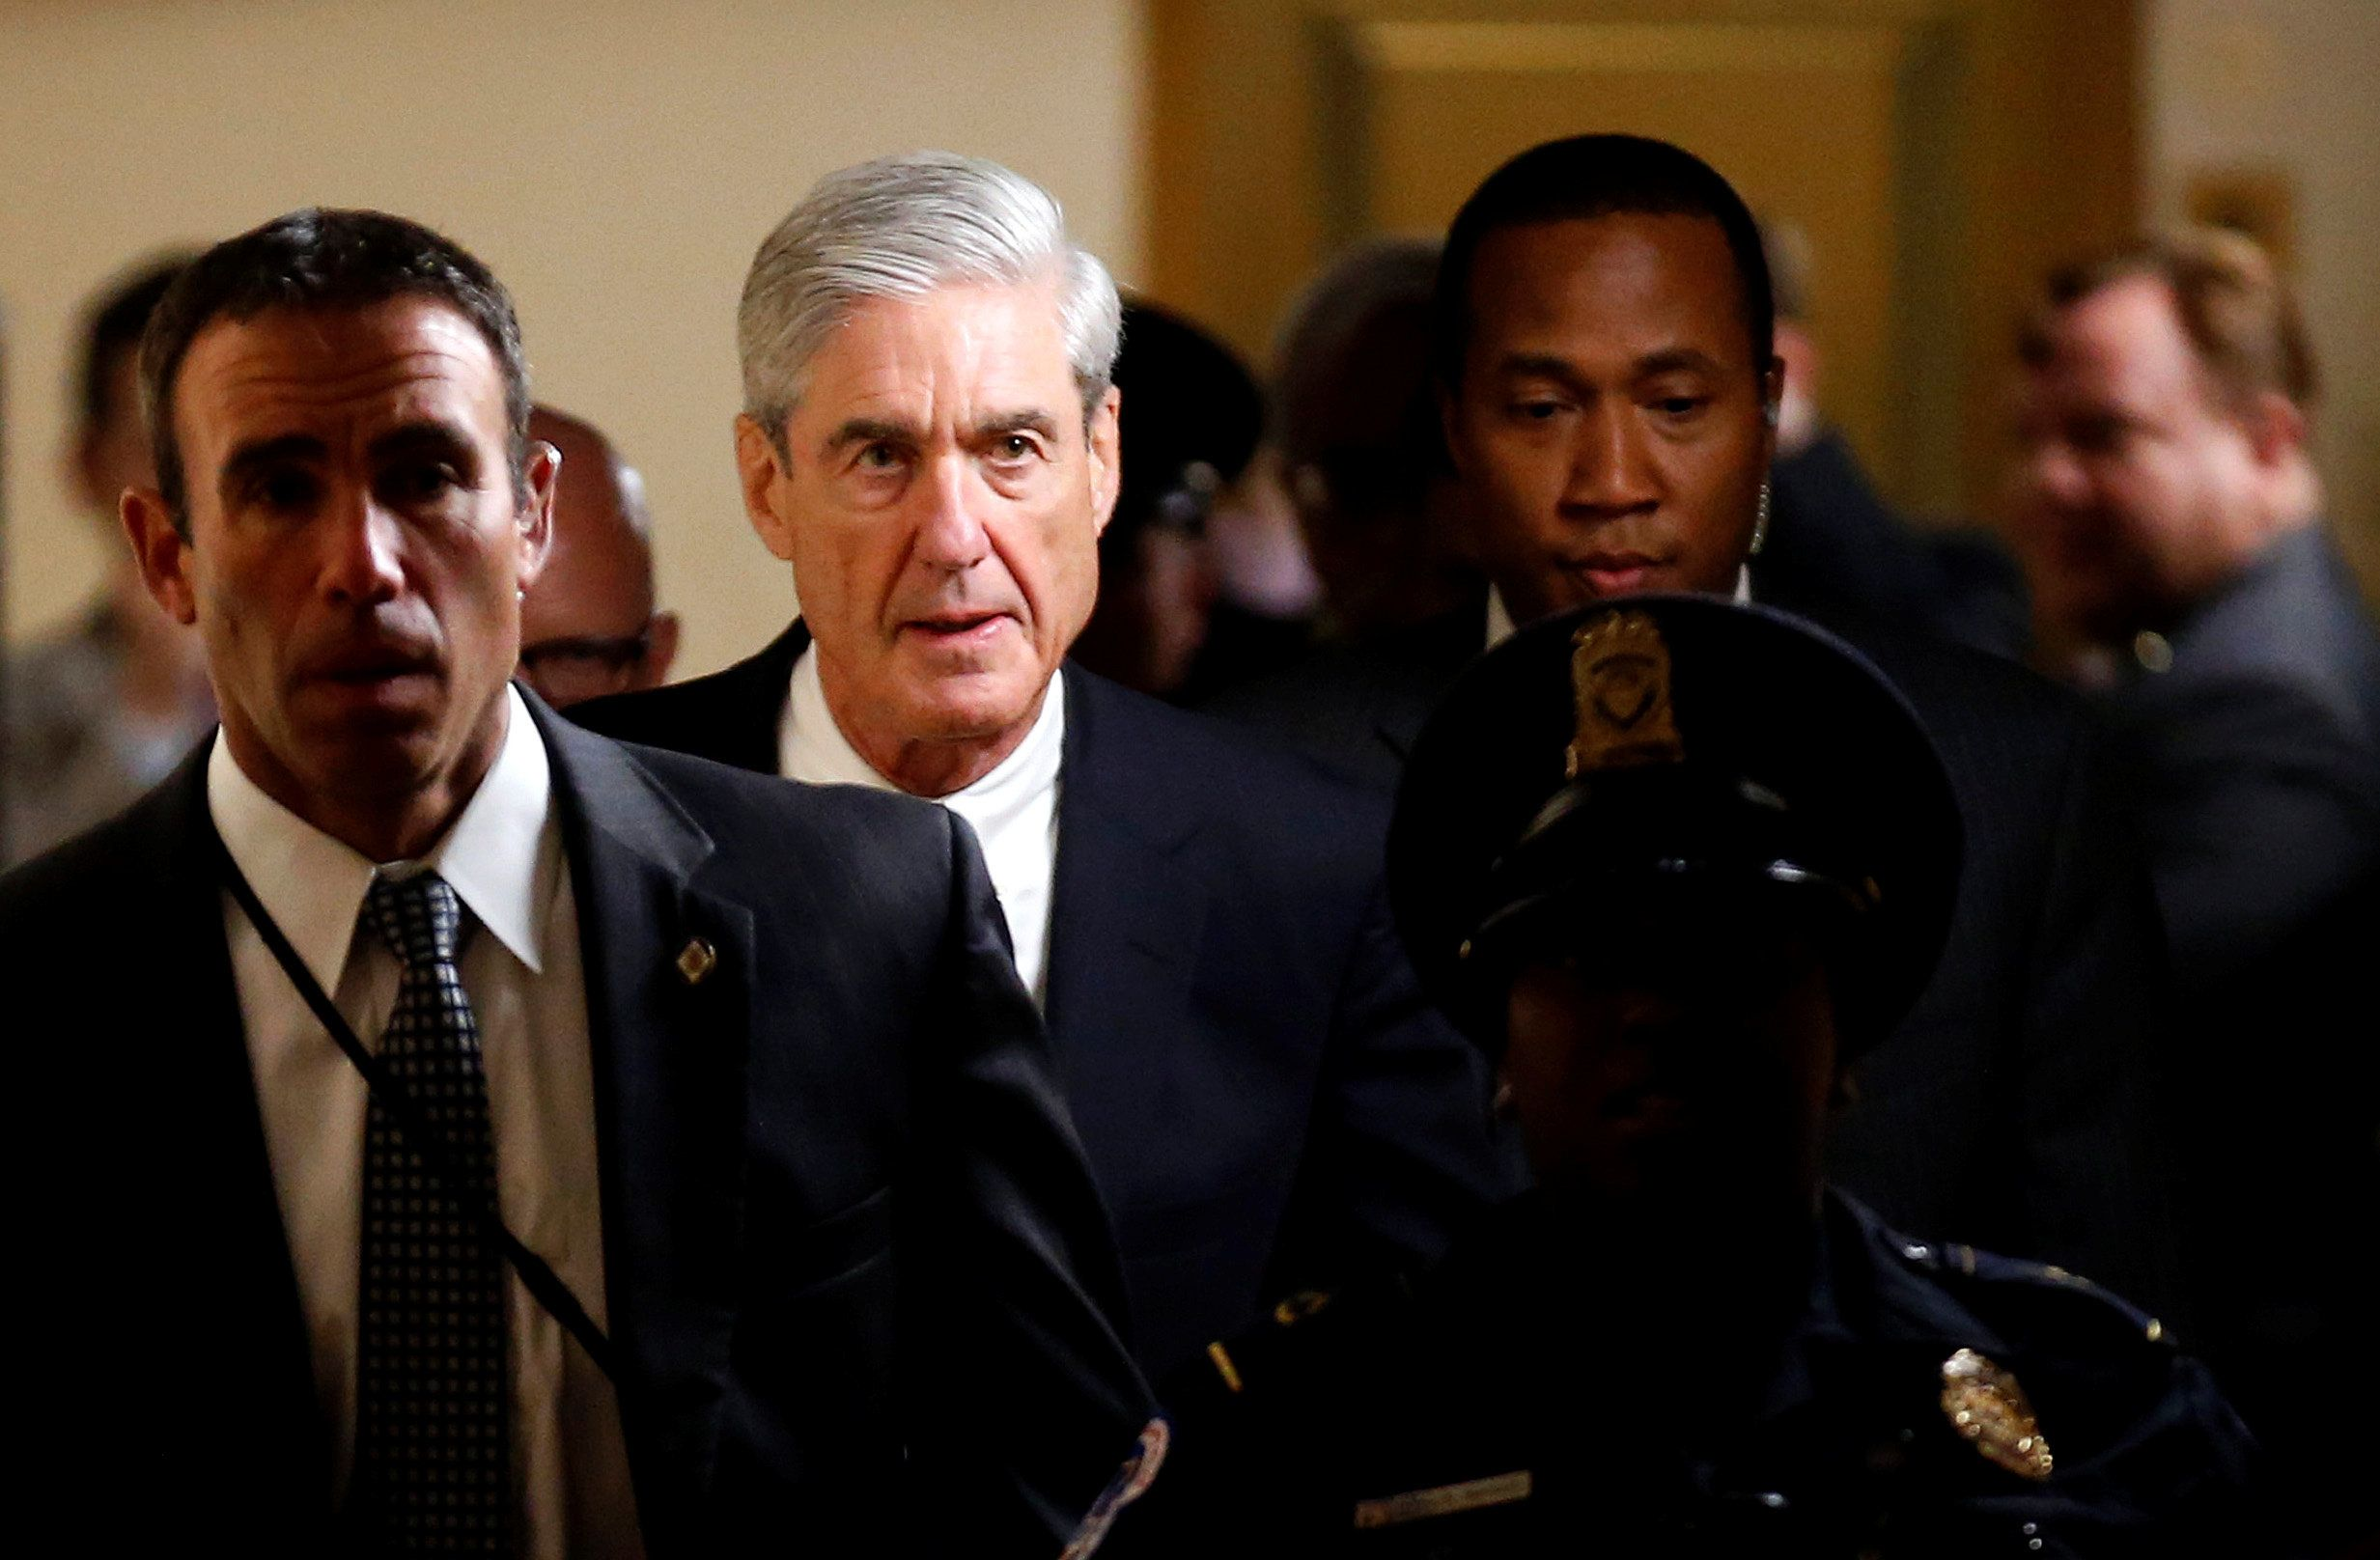 Trump Allies Allege Mueller's Obtaining Trump Transition Emails Was 'Unlawful'